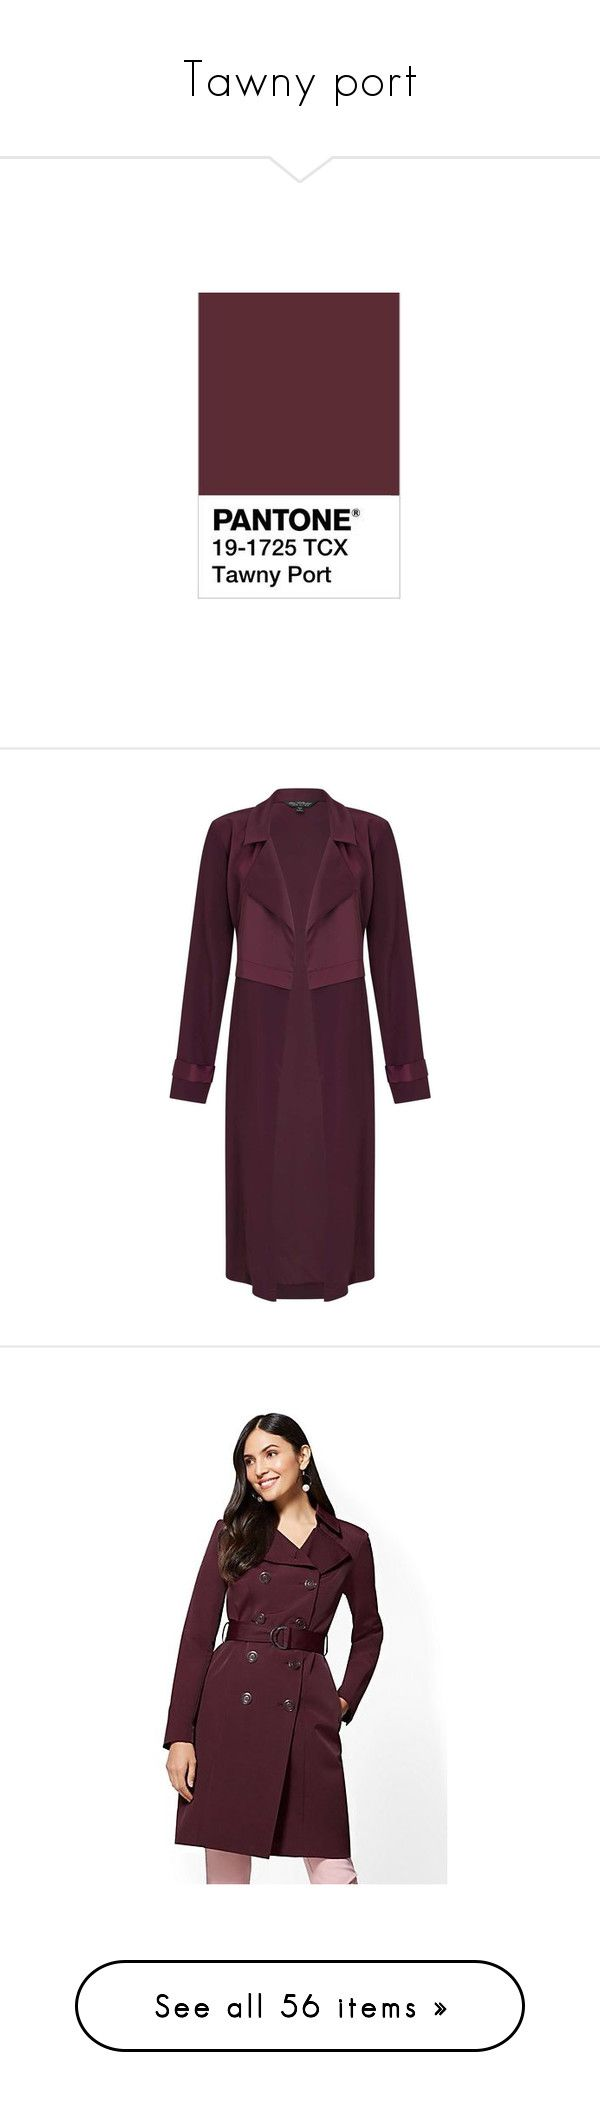 """Tawny port"" by lucia-ac ❤ liked on Polyvore featuring outerwear, coats, burgundy, duster, miss selfridge coats, burgundy coat, purple coat, shiny coat, duster coat and tie belt"